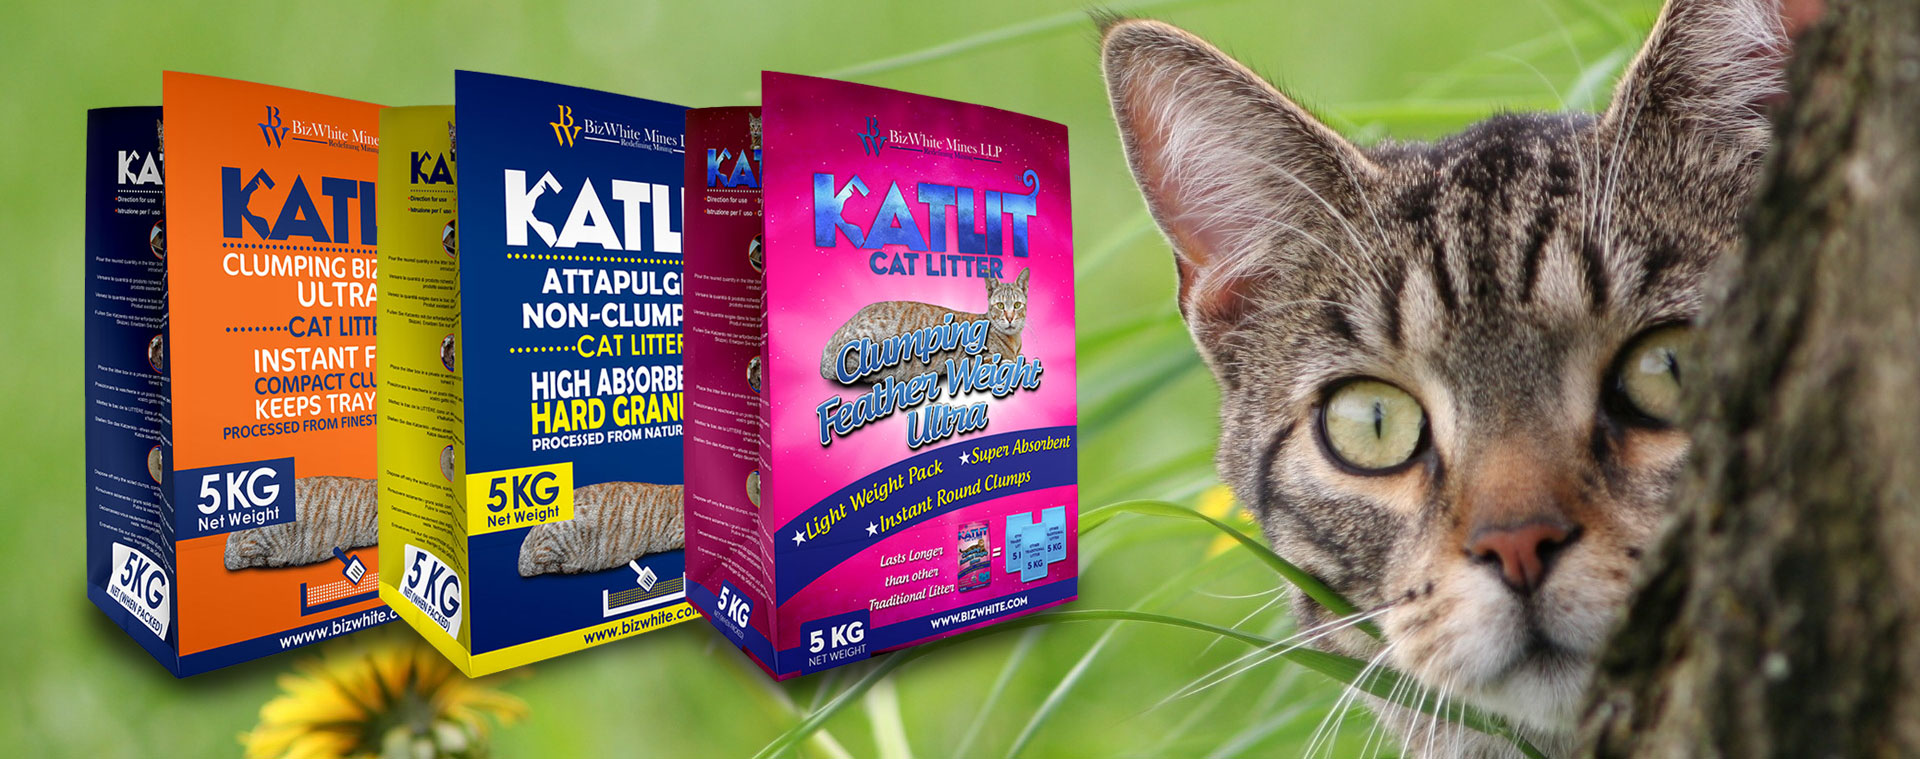 worlds-top-quality-Cat-litter-from-india